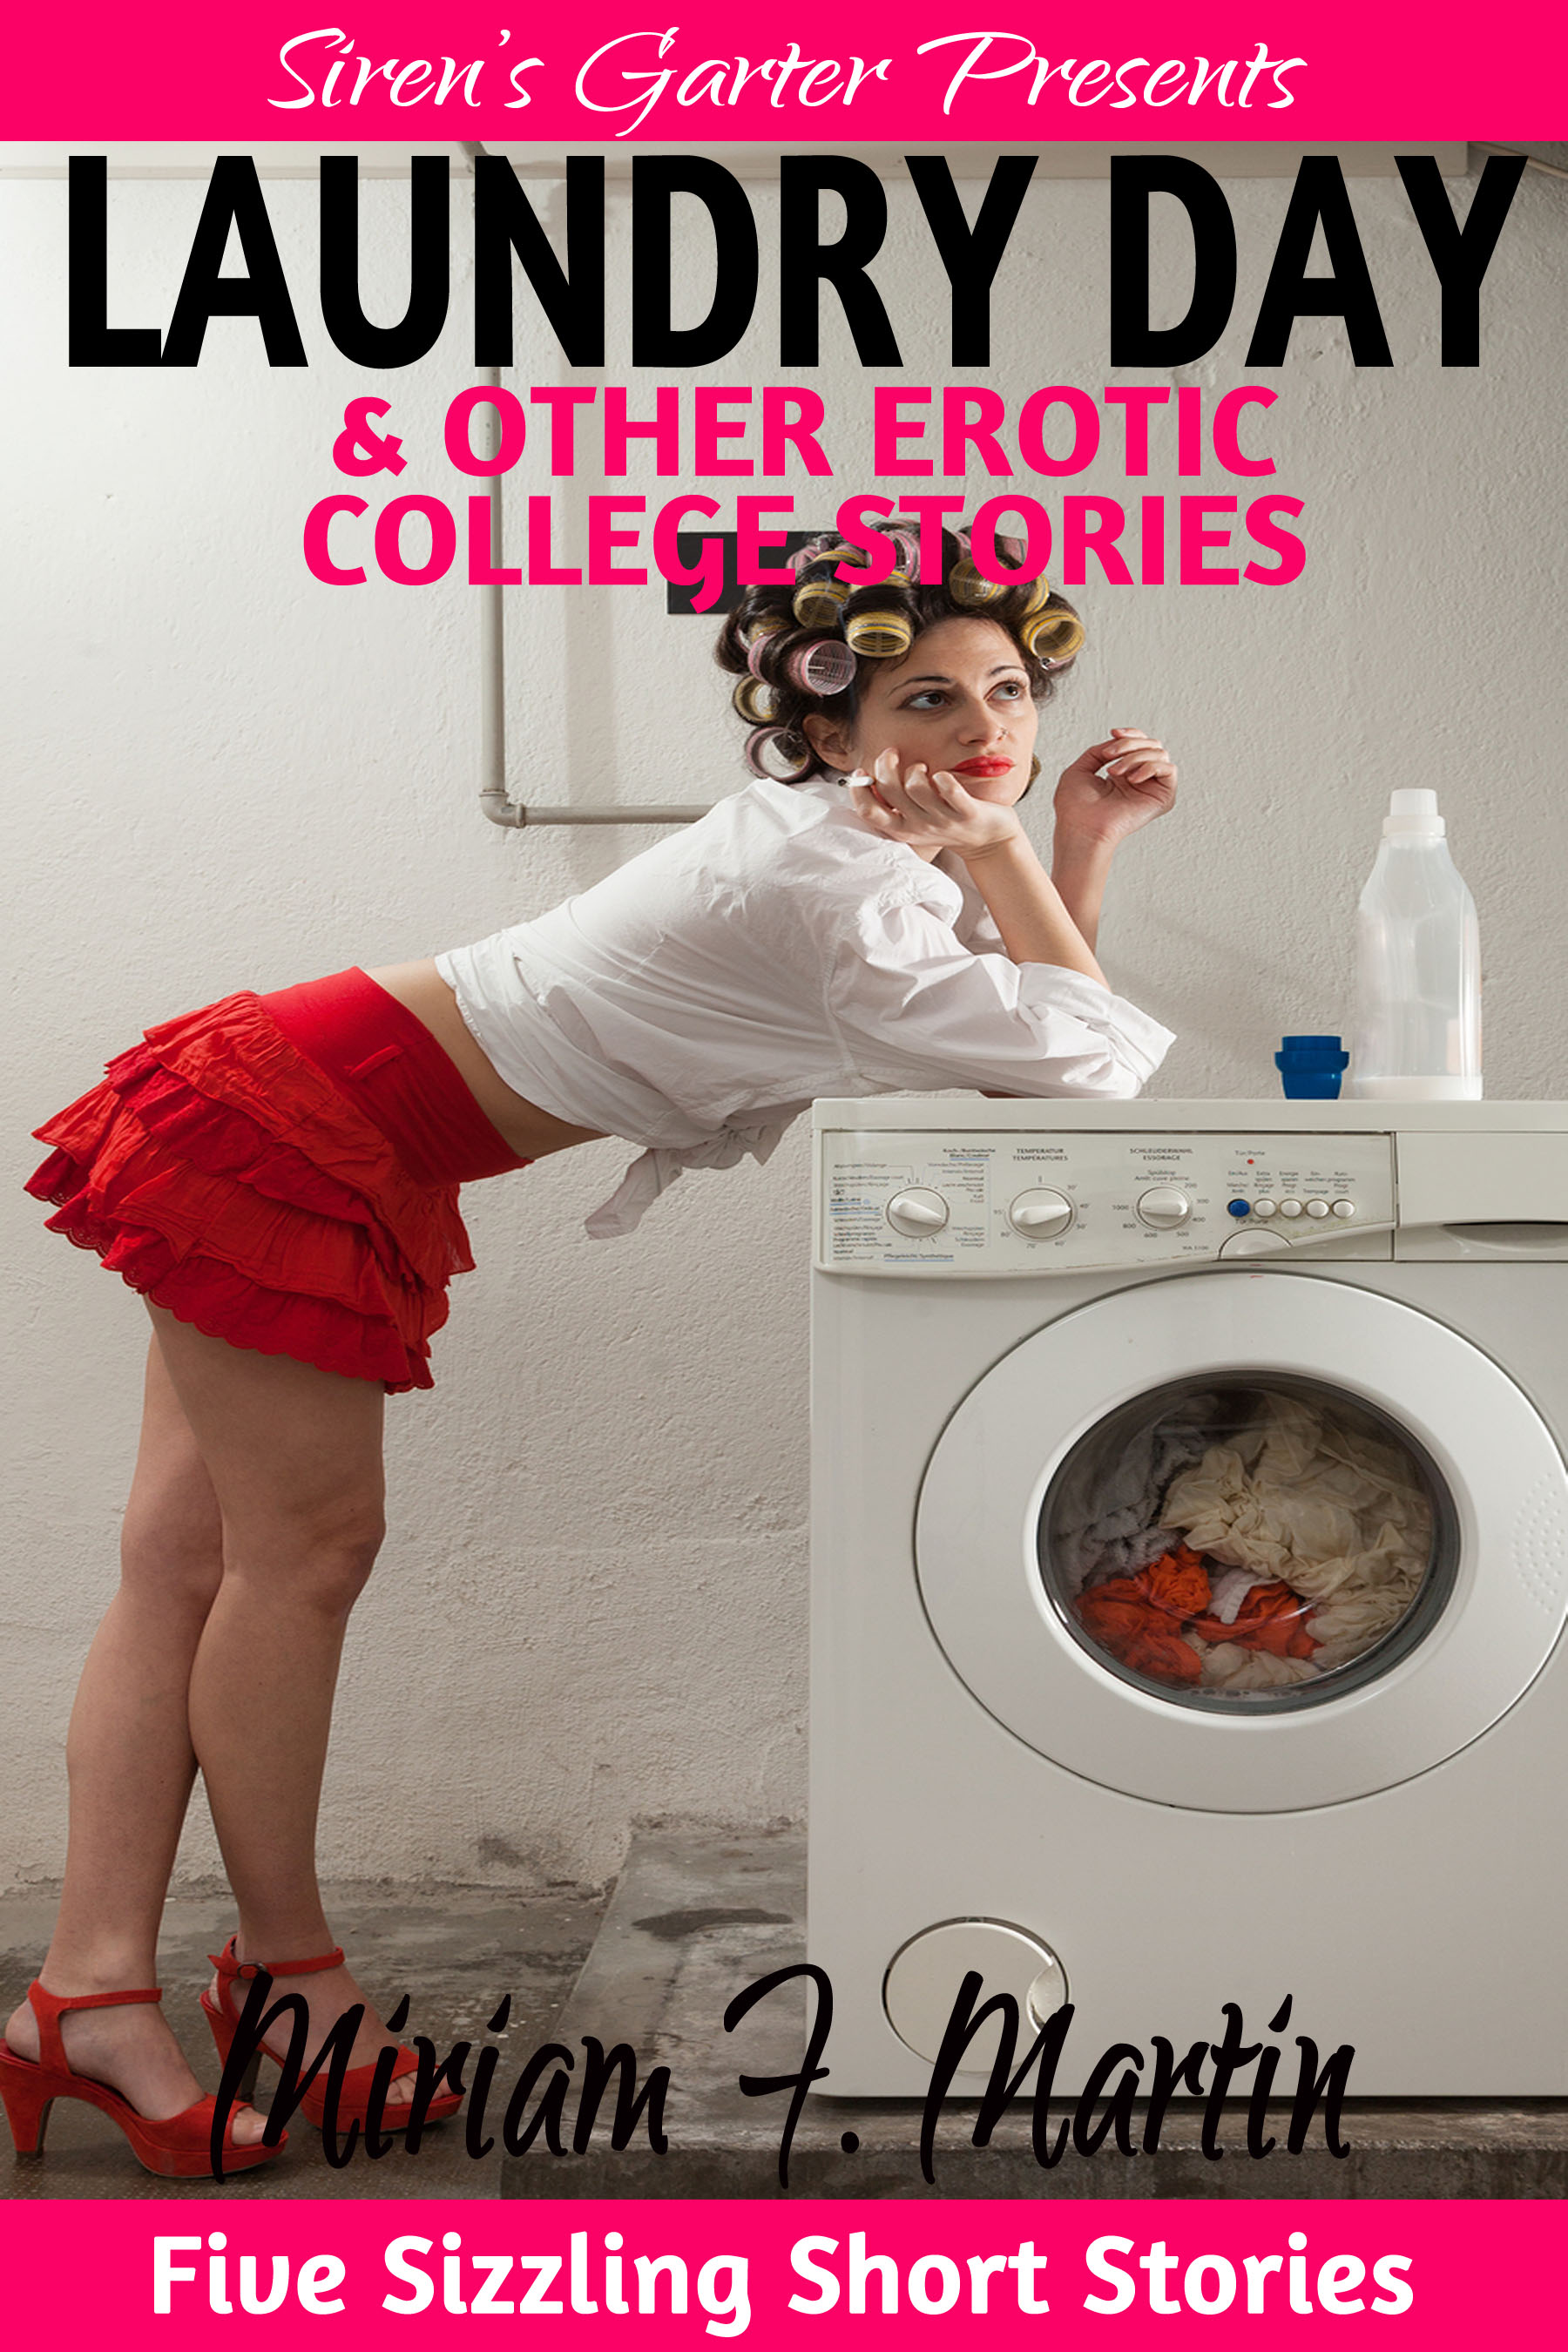 Laundry Day Other Erotic College Stories